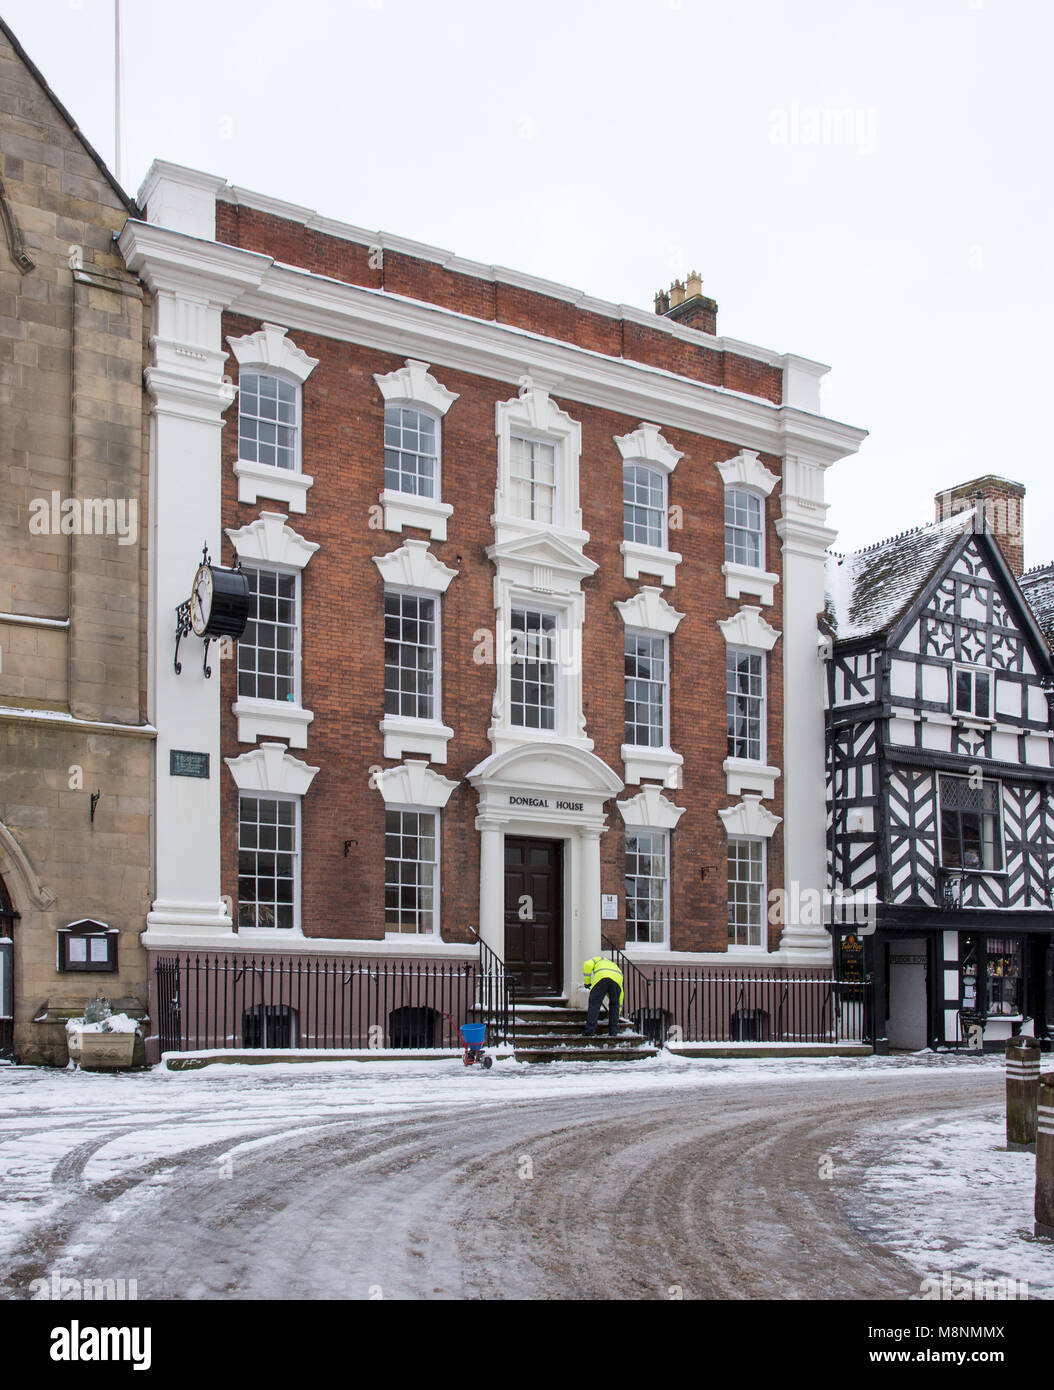 Lichfield City Council Building Donegal House Staffordshire, England.  18th March 2018 Man in yellow jacket cleaning - Stock Image